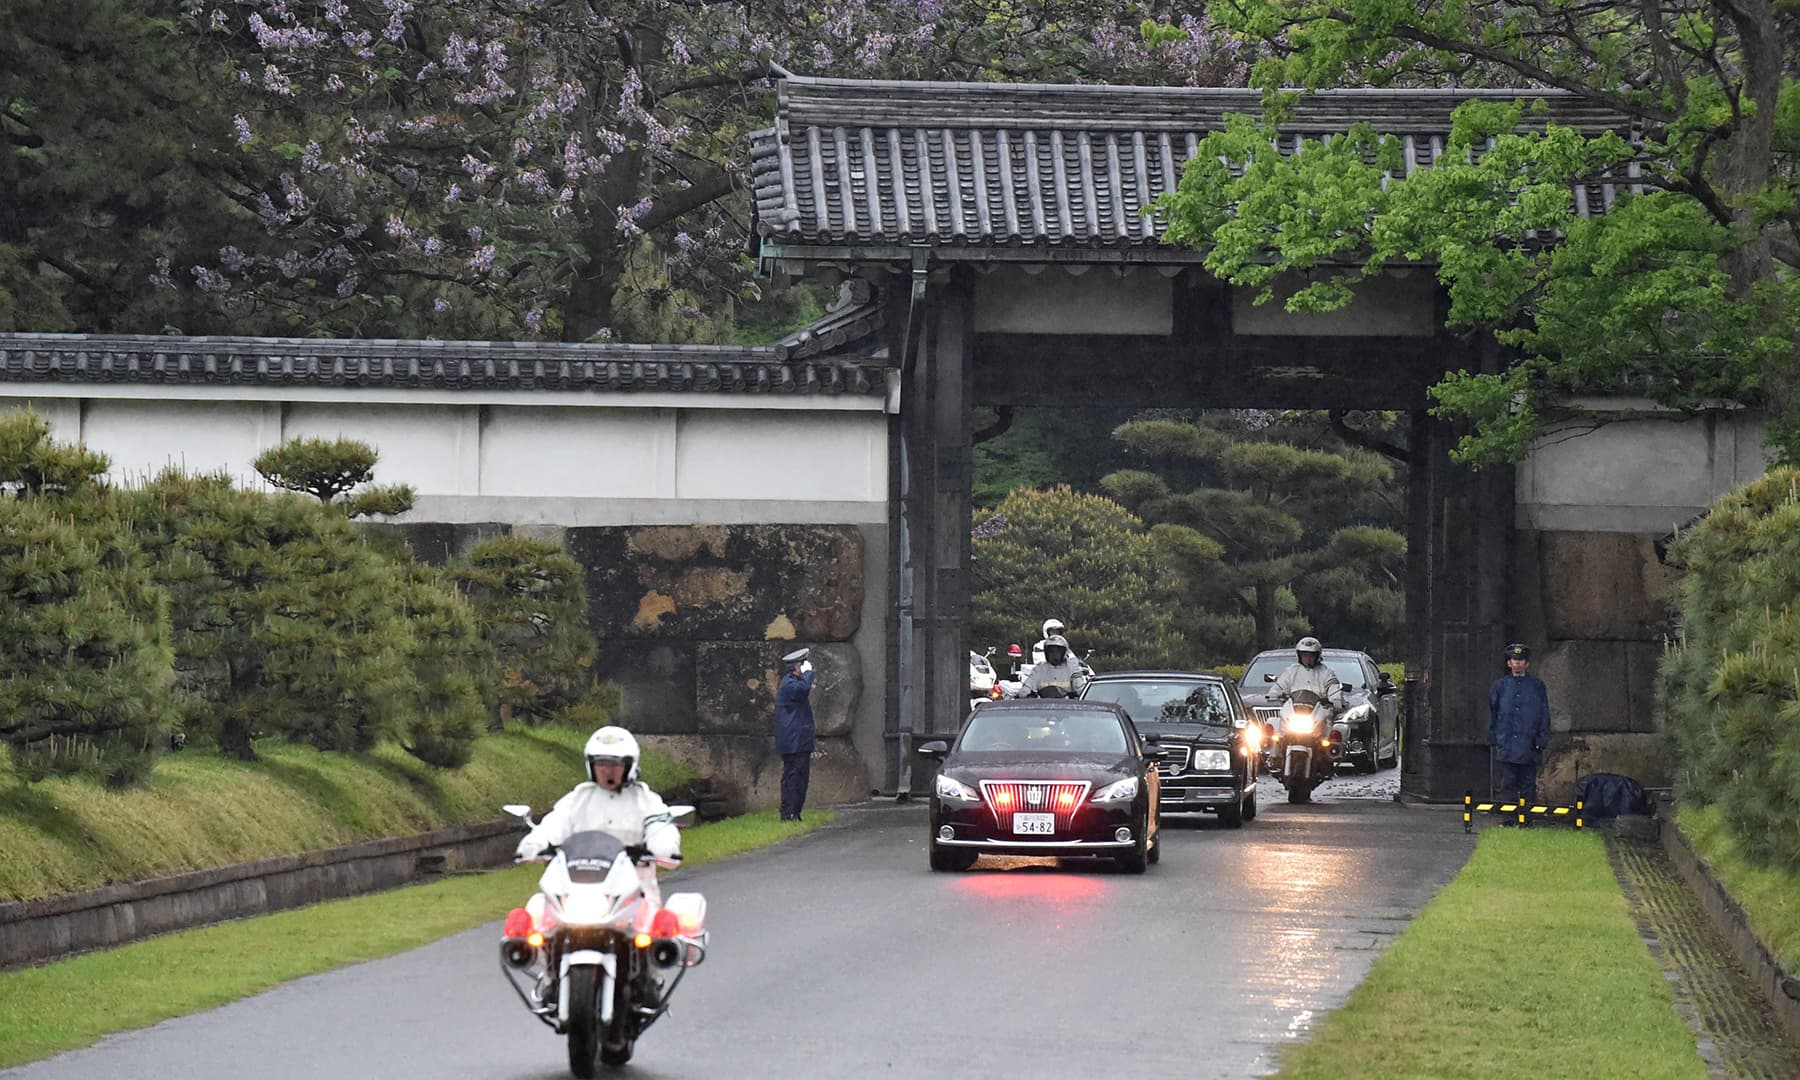 A motorcade transporting Japan's new Emperor Naruhito and Empress Masako leaves through one of the gates of the Imperial Palace in Tokyo. — AFP